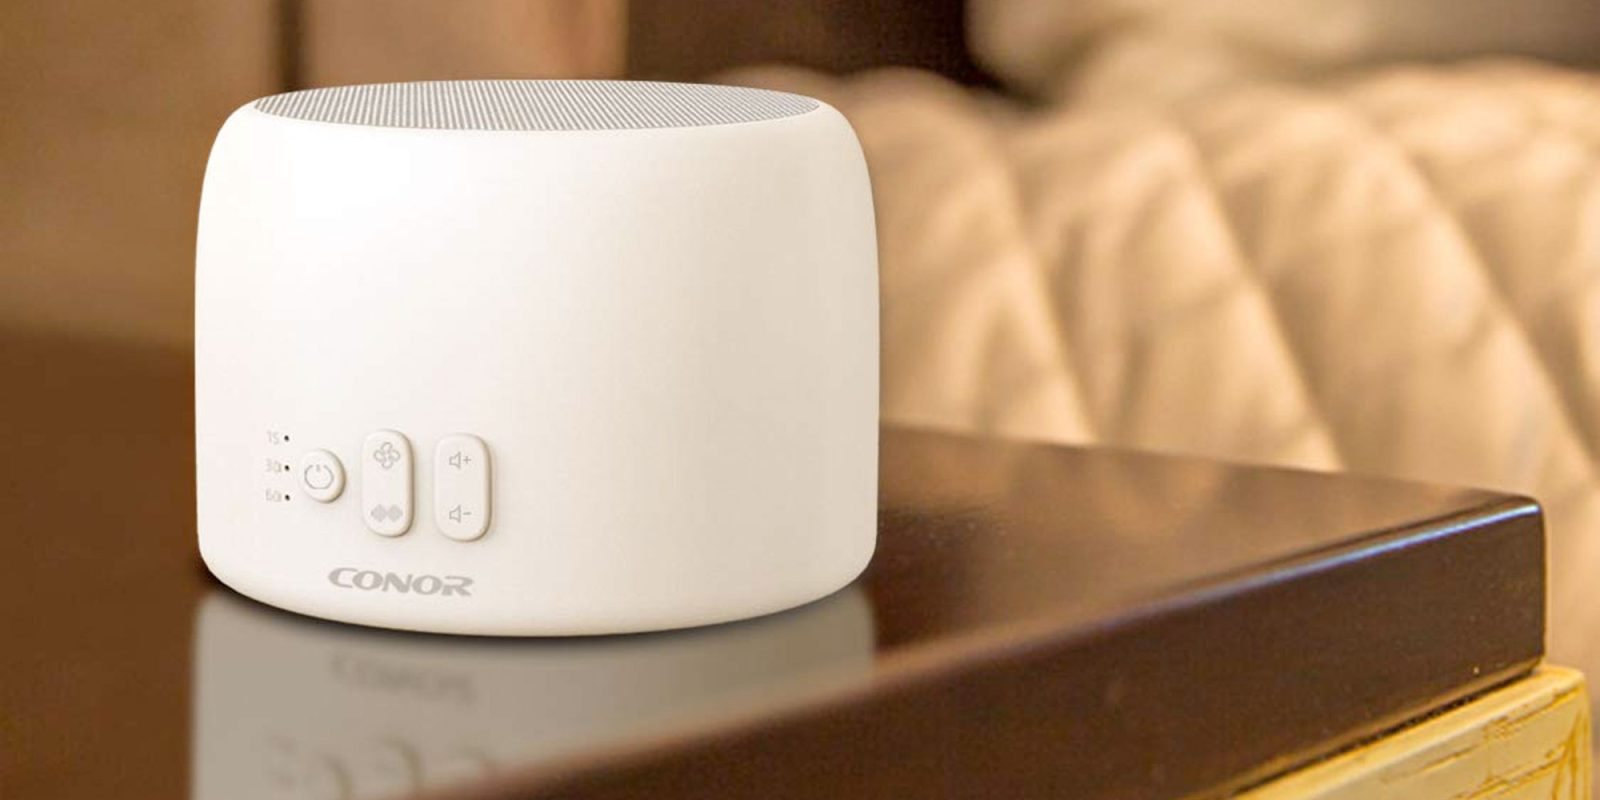 Save $10 on a white noise machine that also charges your iPhone at $26